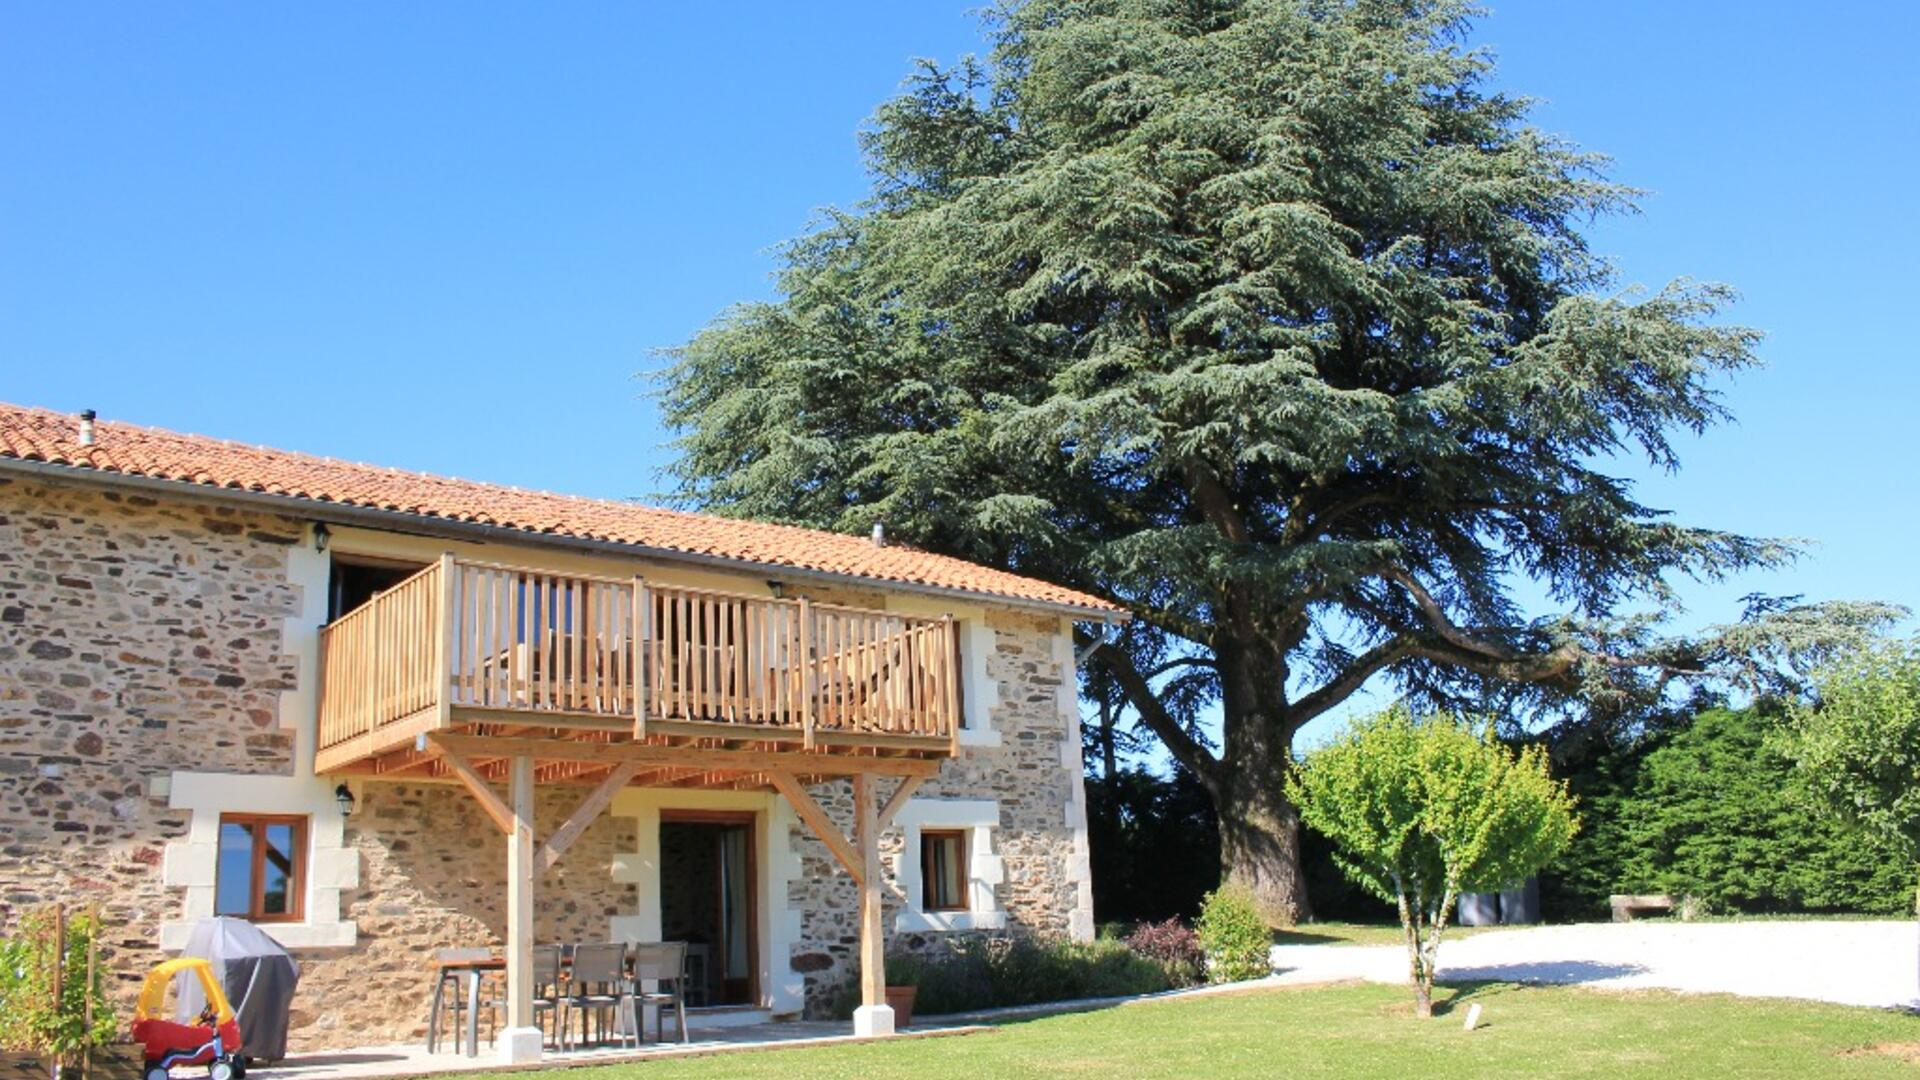 3 Bedroom Cottage/shared grounds in Poitou-Charentes, France